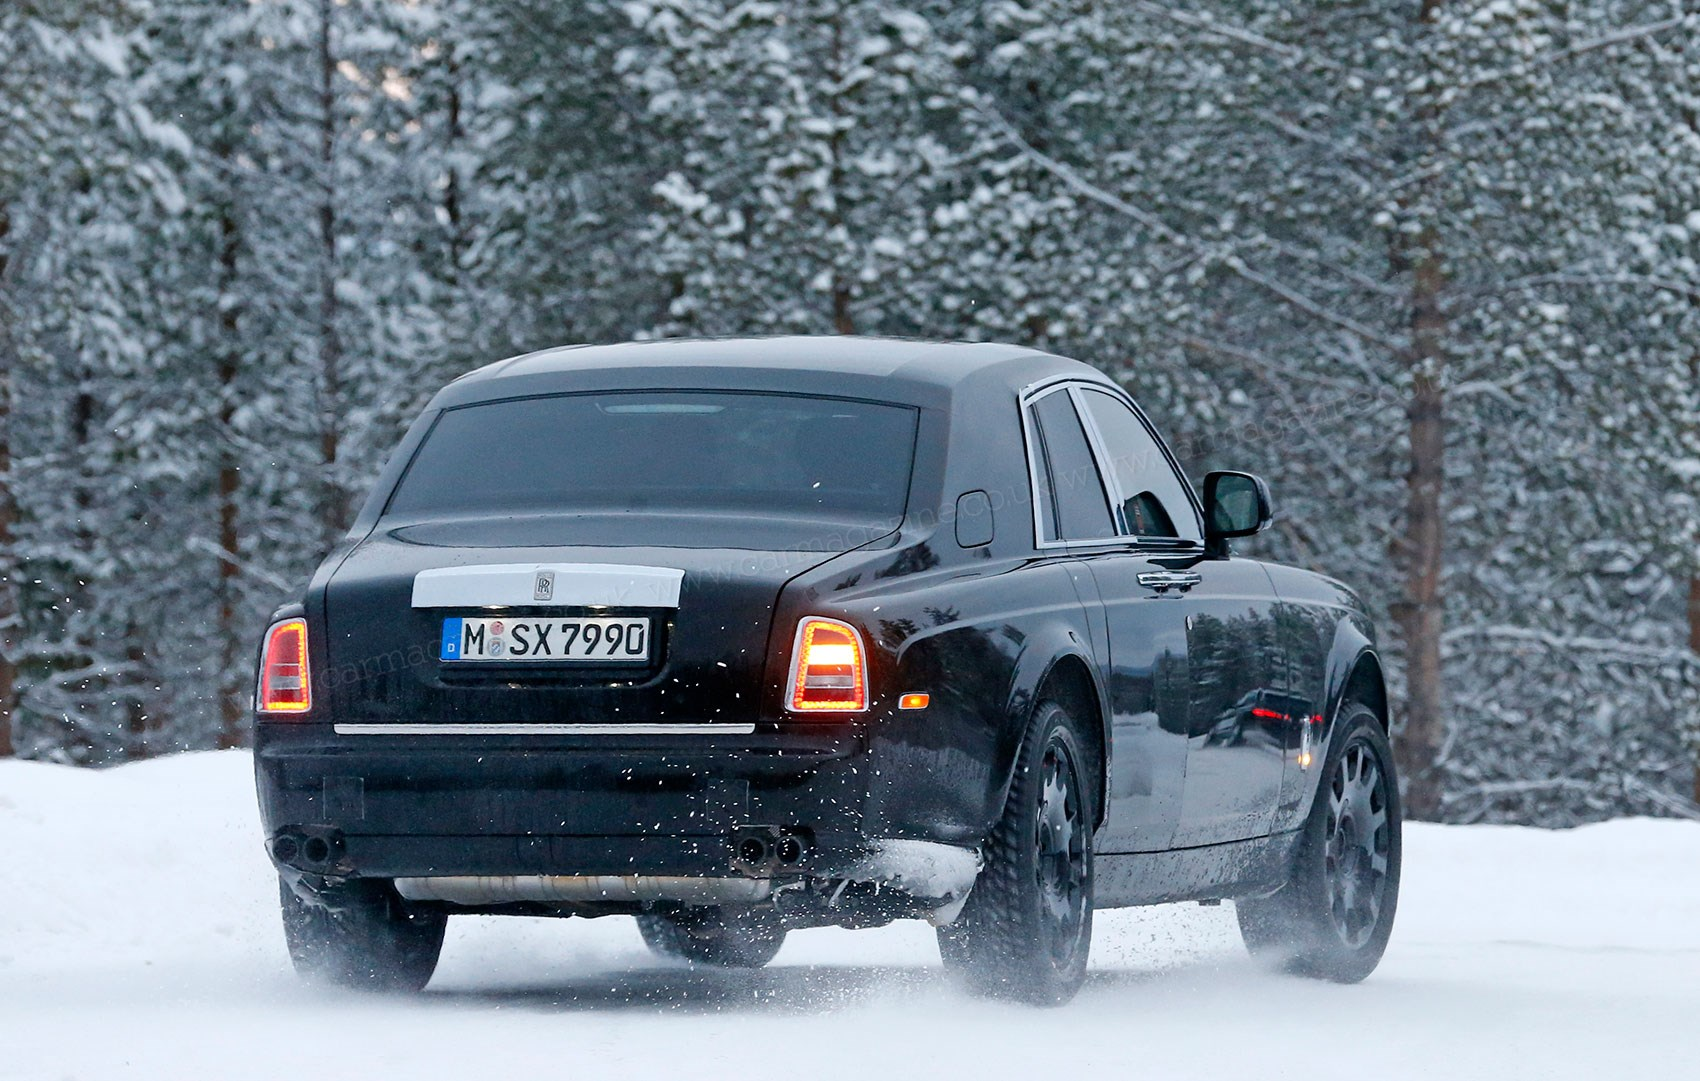 2018 rolls royce suv rendered 2016 new best cars -  This Is An Engineering Mule Caught On Test In Scandinavia